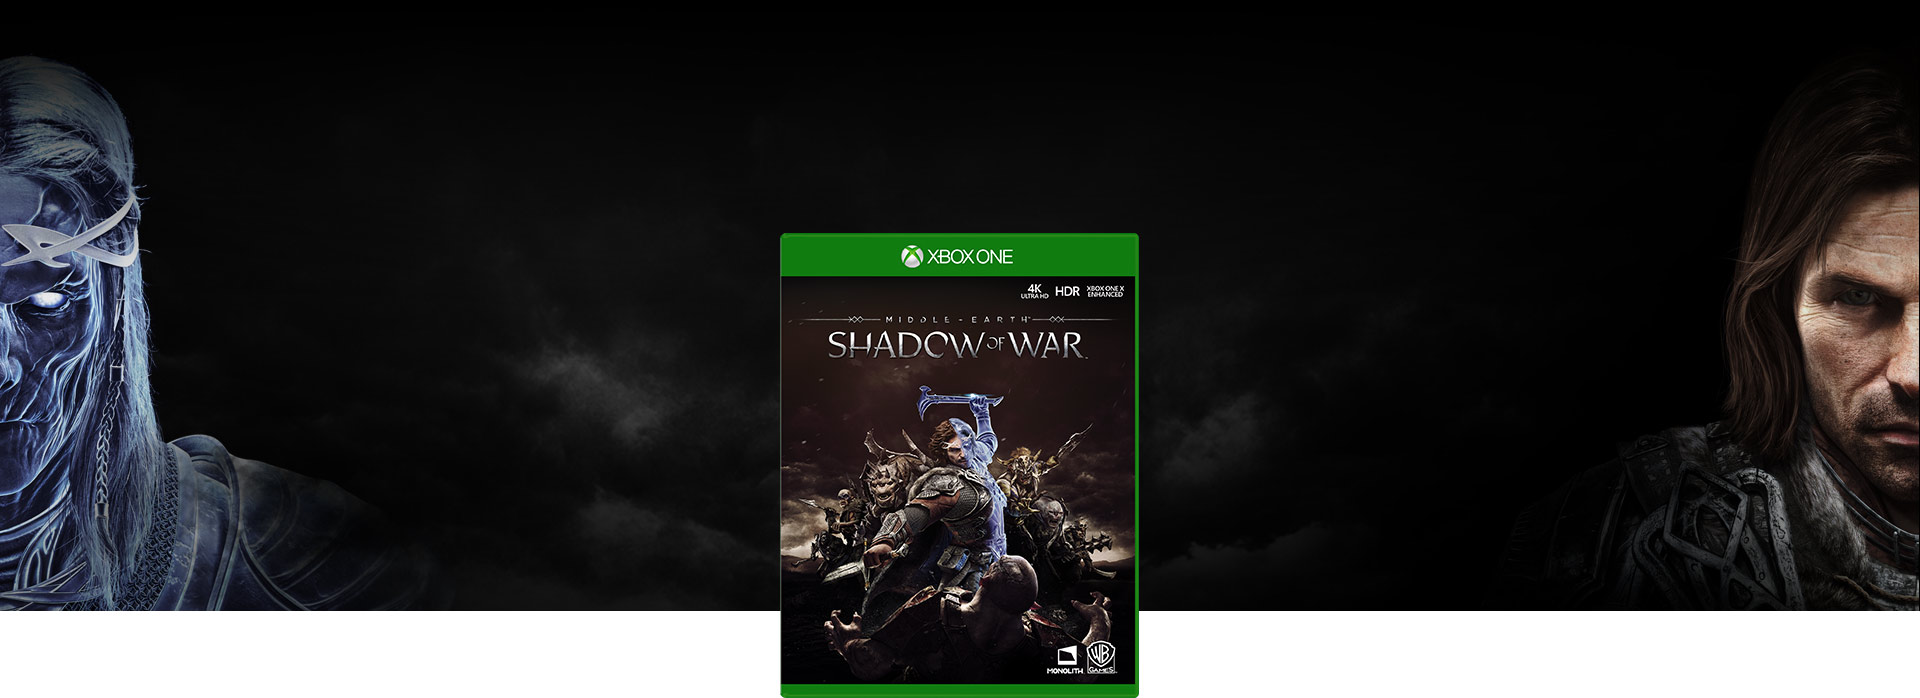 Middle-earth Shadow of War boxshot. Human face and ghost face of Talion opposite each other